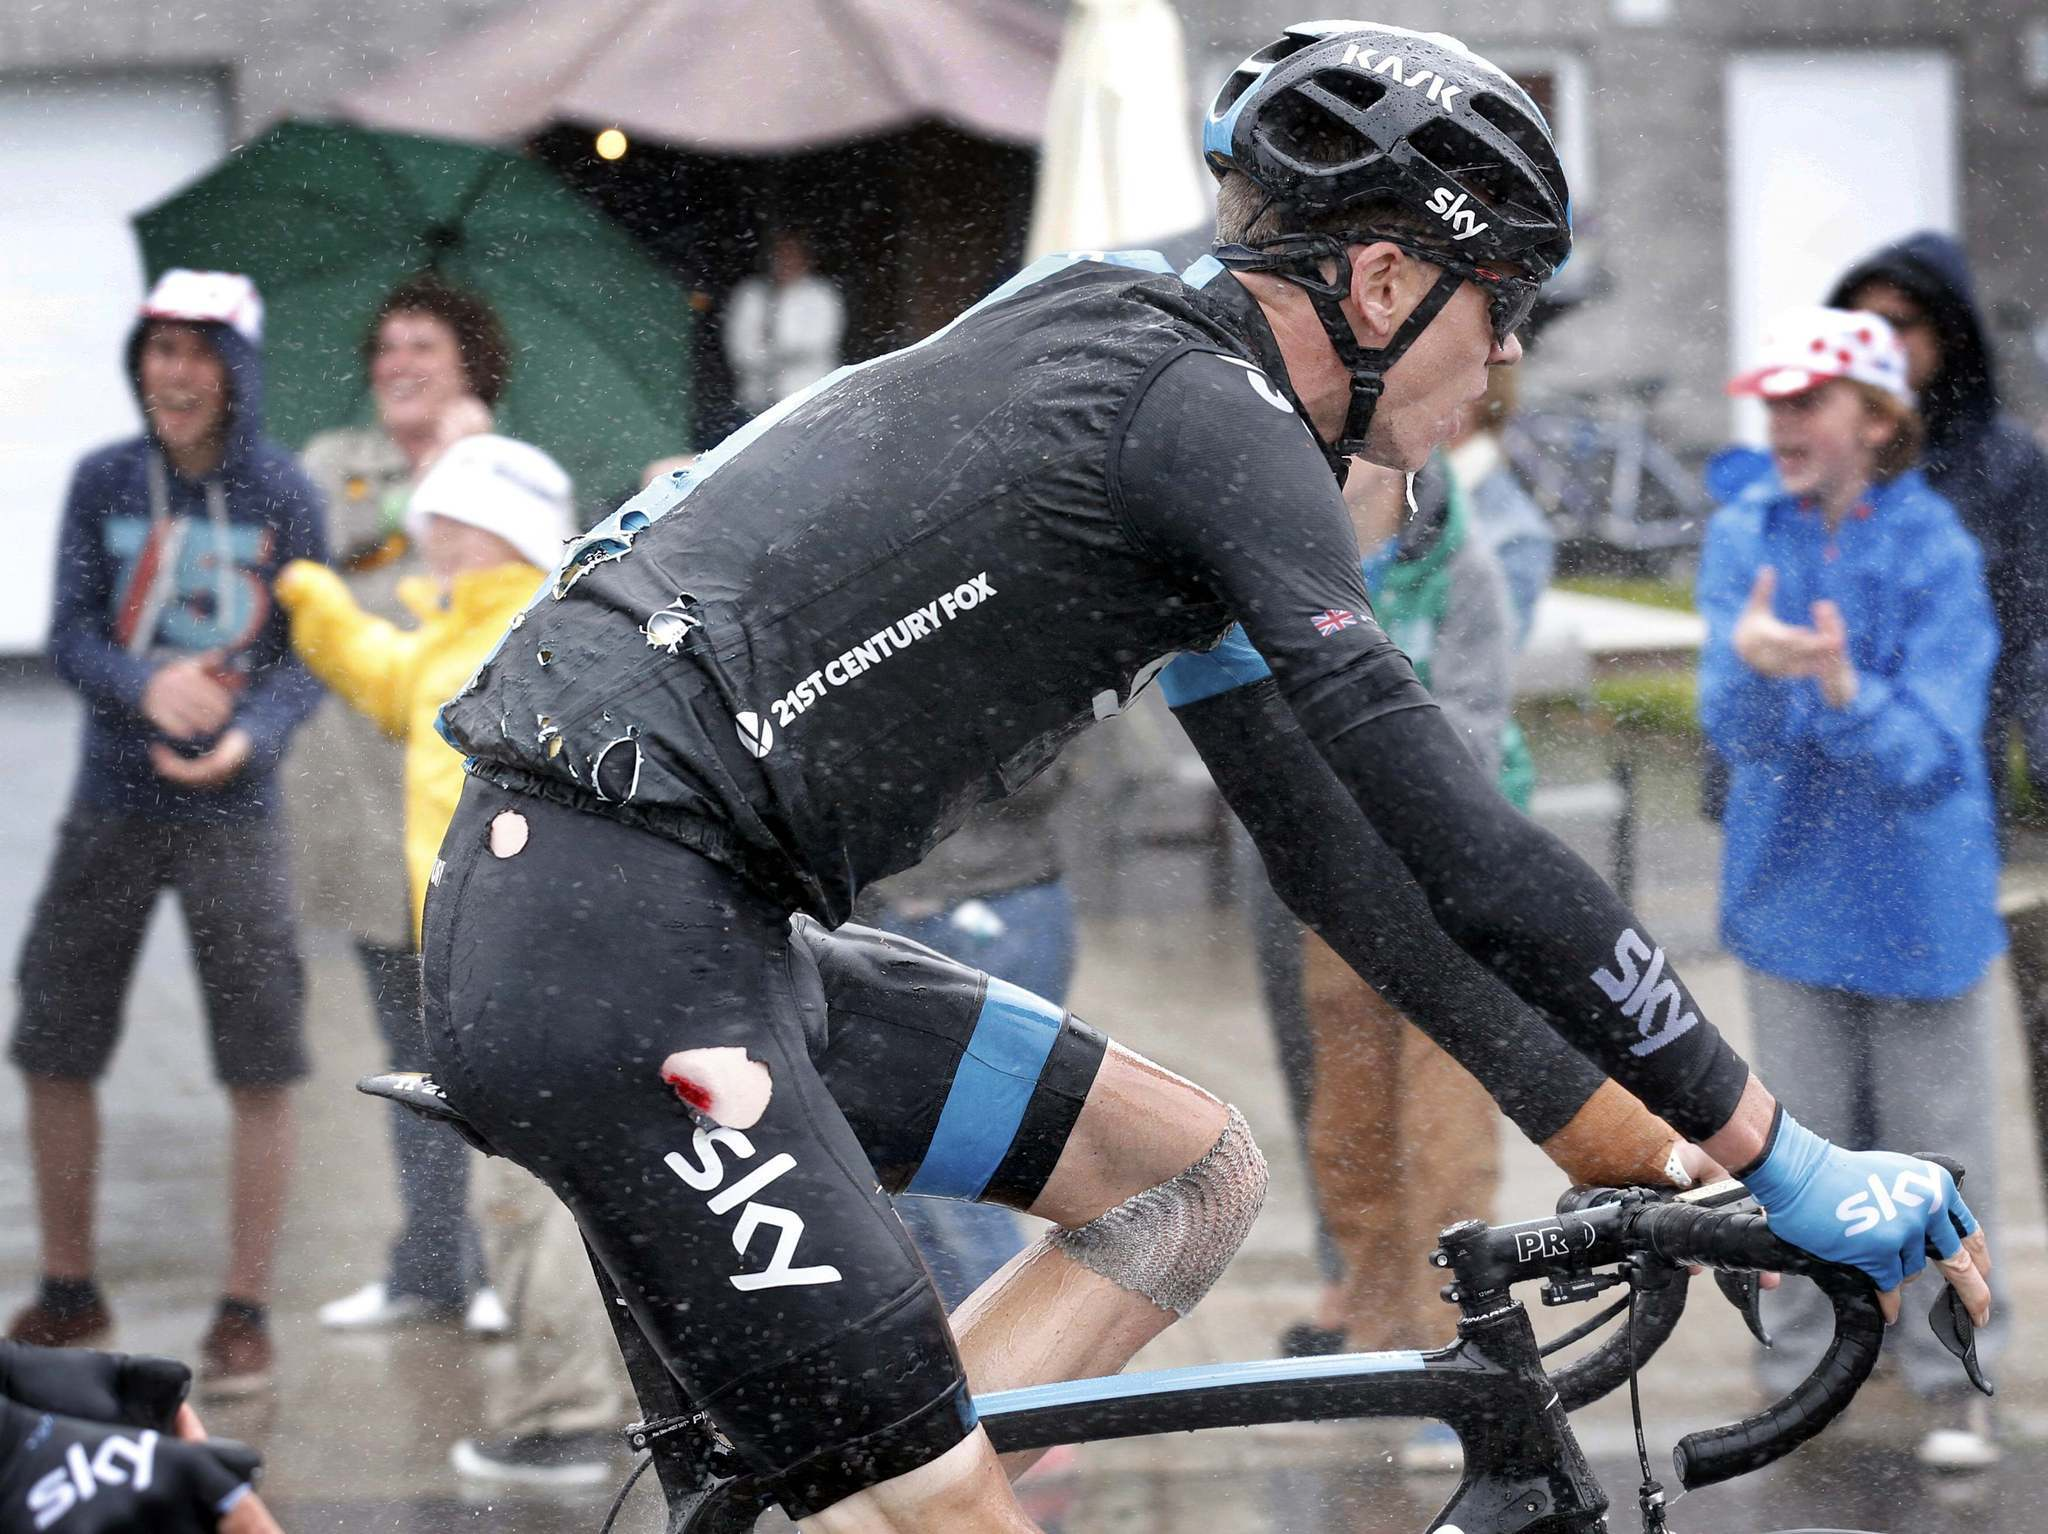 Christopher Froome of Britain rides in his torn cycling costume after falling in the 5th stage of the Tour de France.